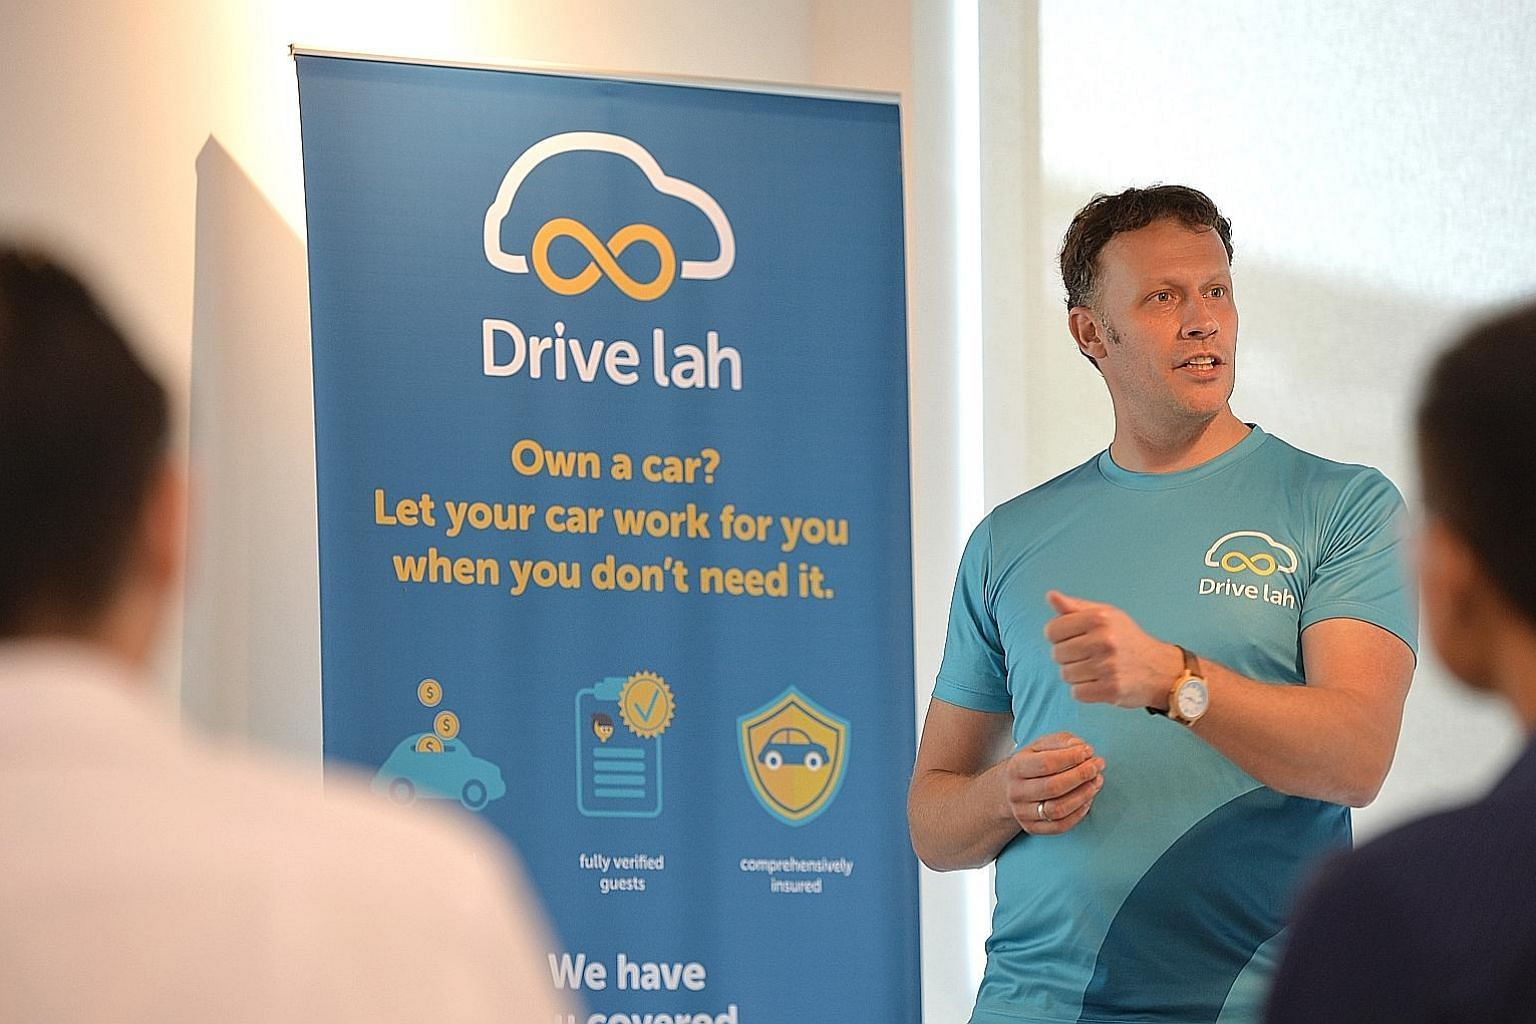 Entrepreneur Dirk-Jan ter Horst came up with the idea of Drive lah, which was launched in June.